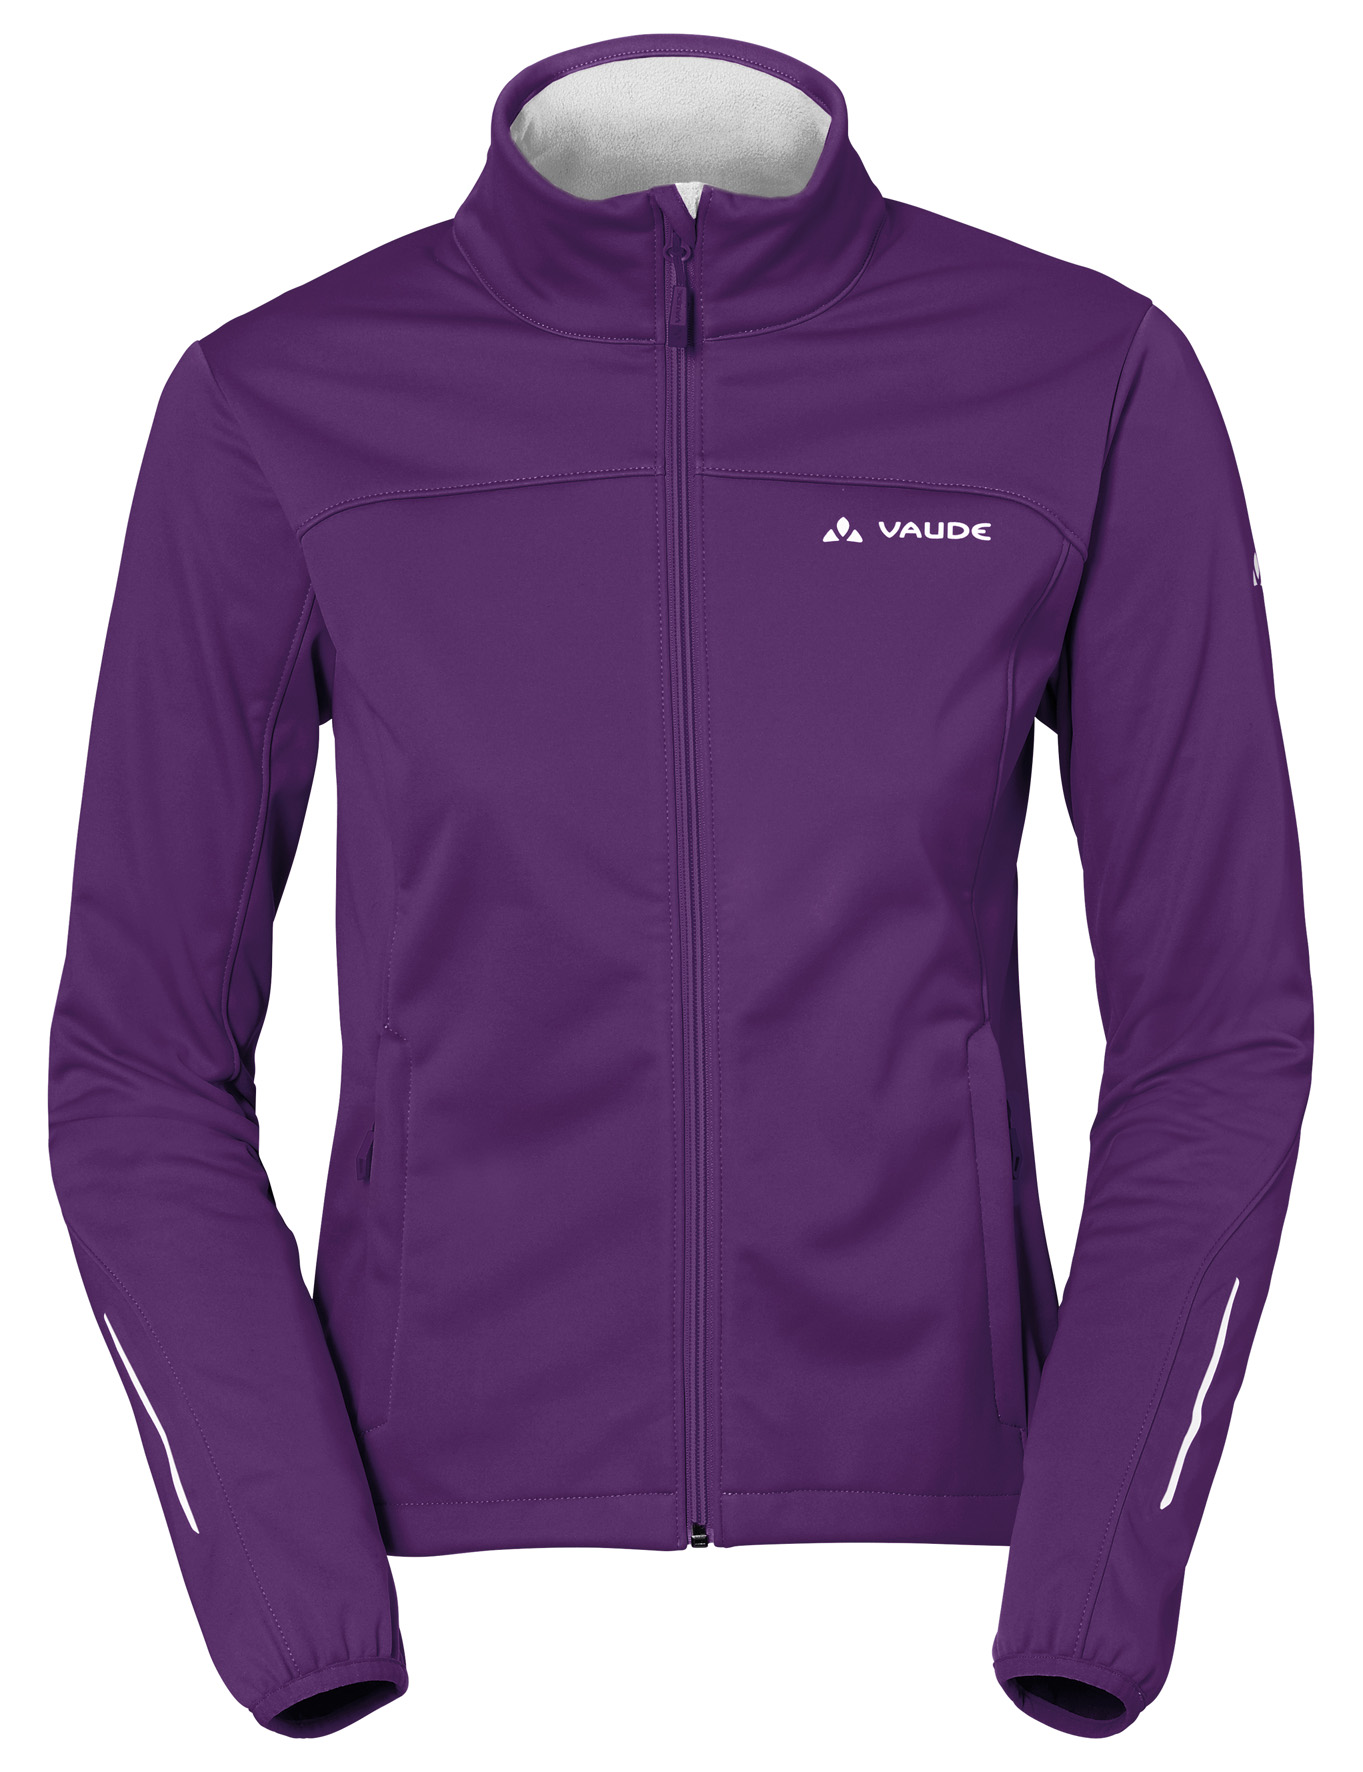 VAUDE Women´s Wintry Jacket III elderberry Größe 44 - schneider-sports